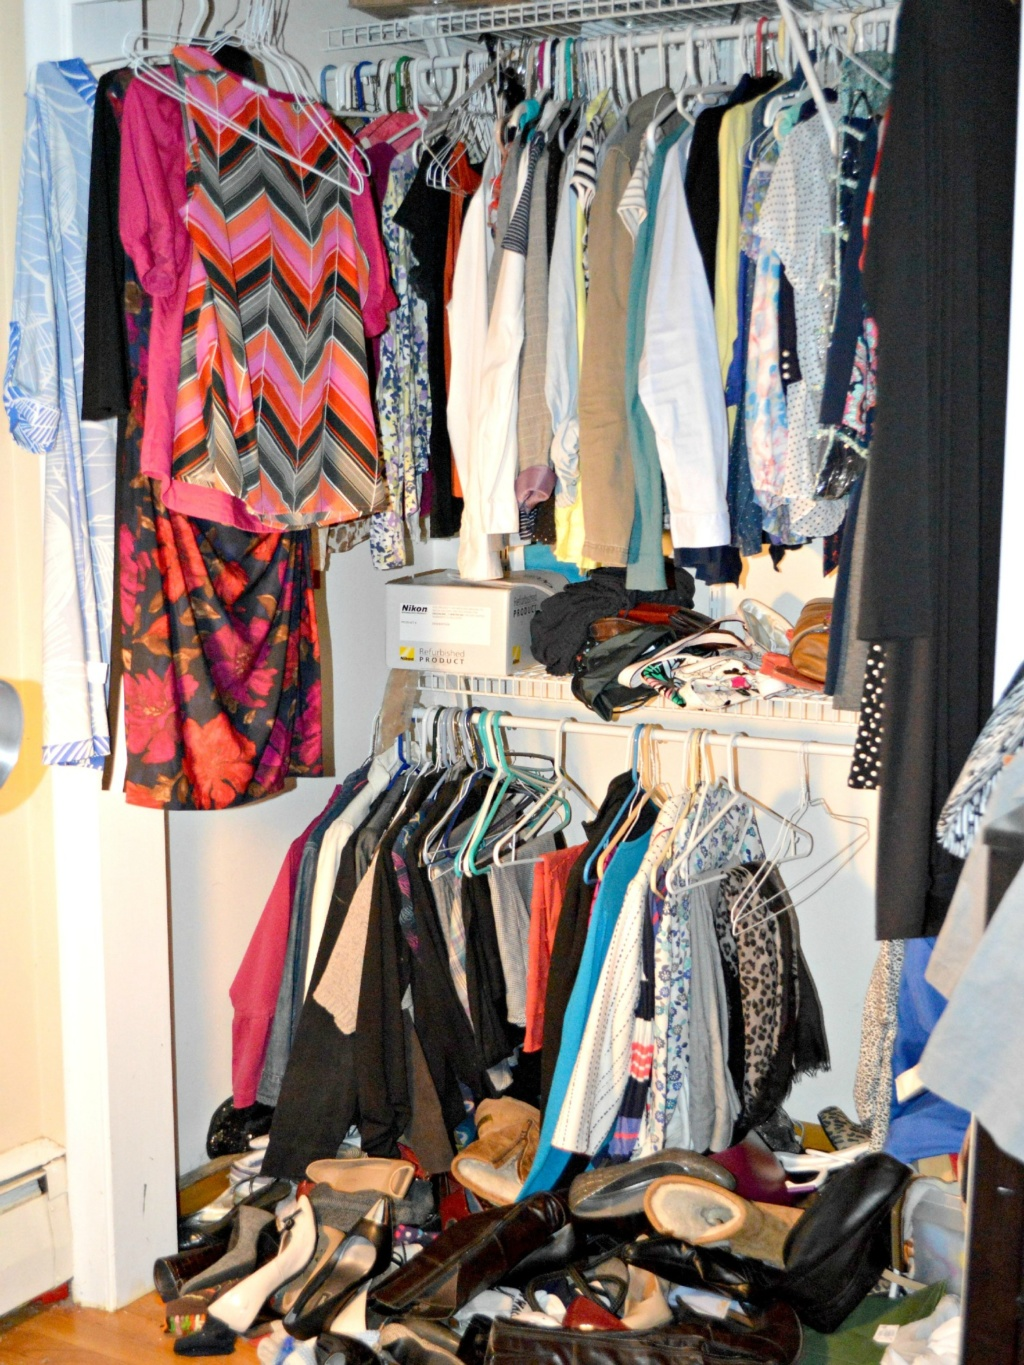 #write31days – Organize Your Clothes